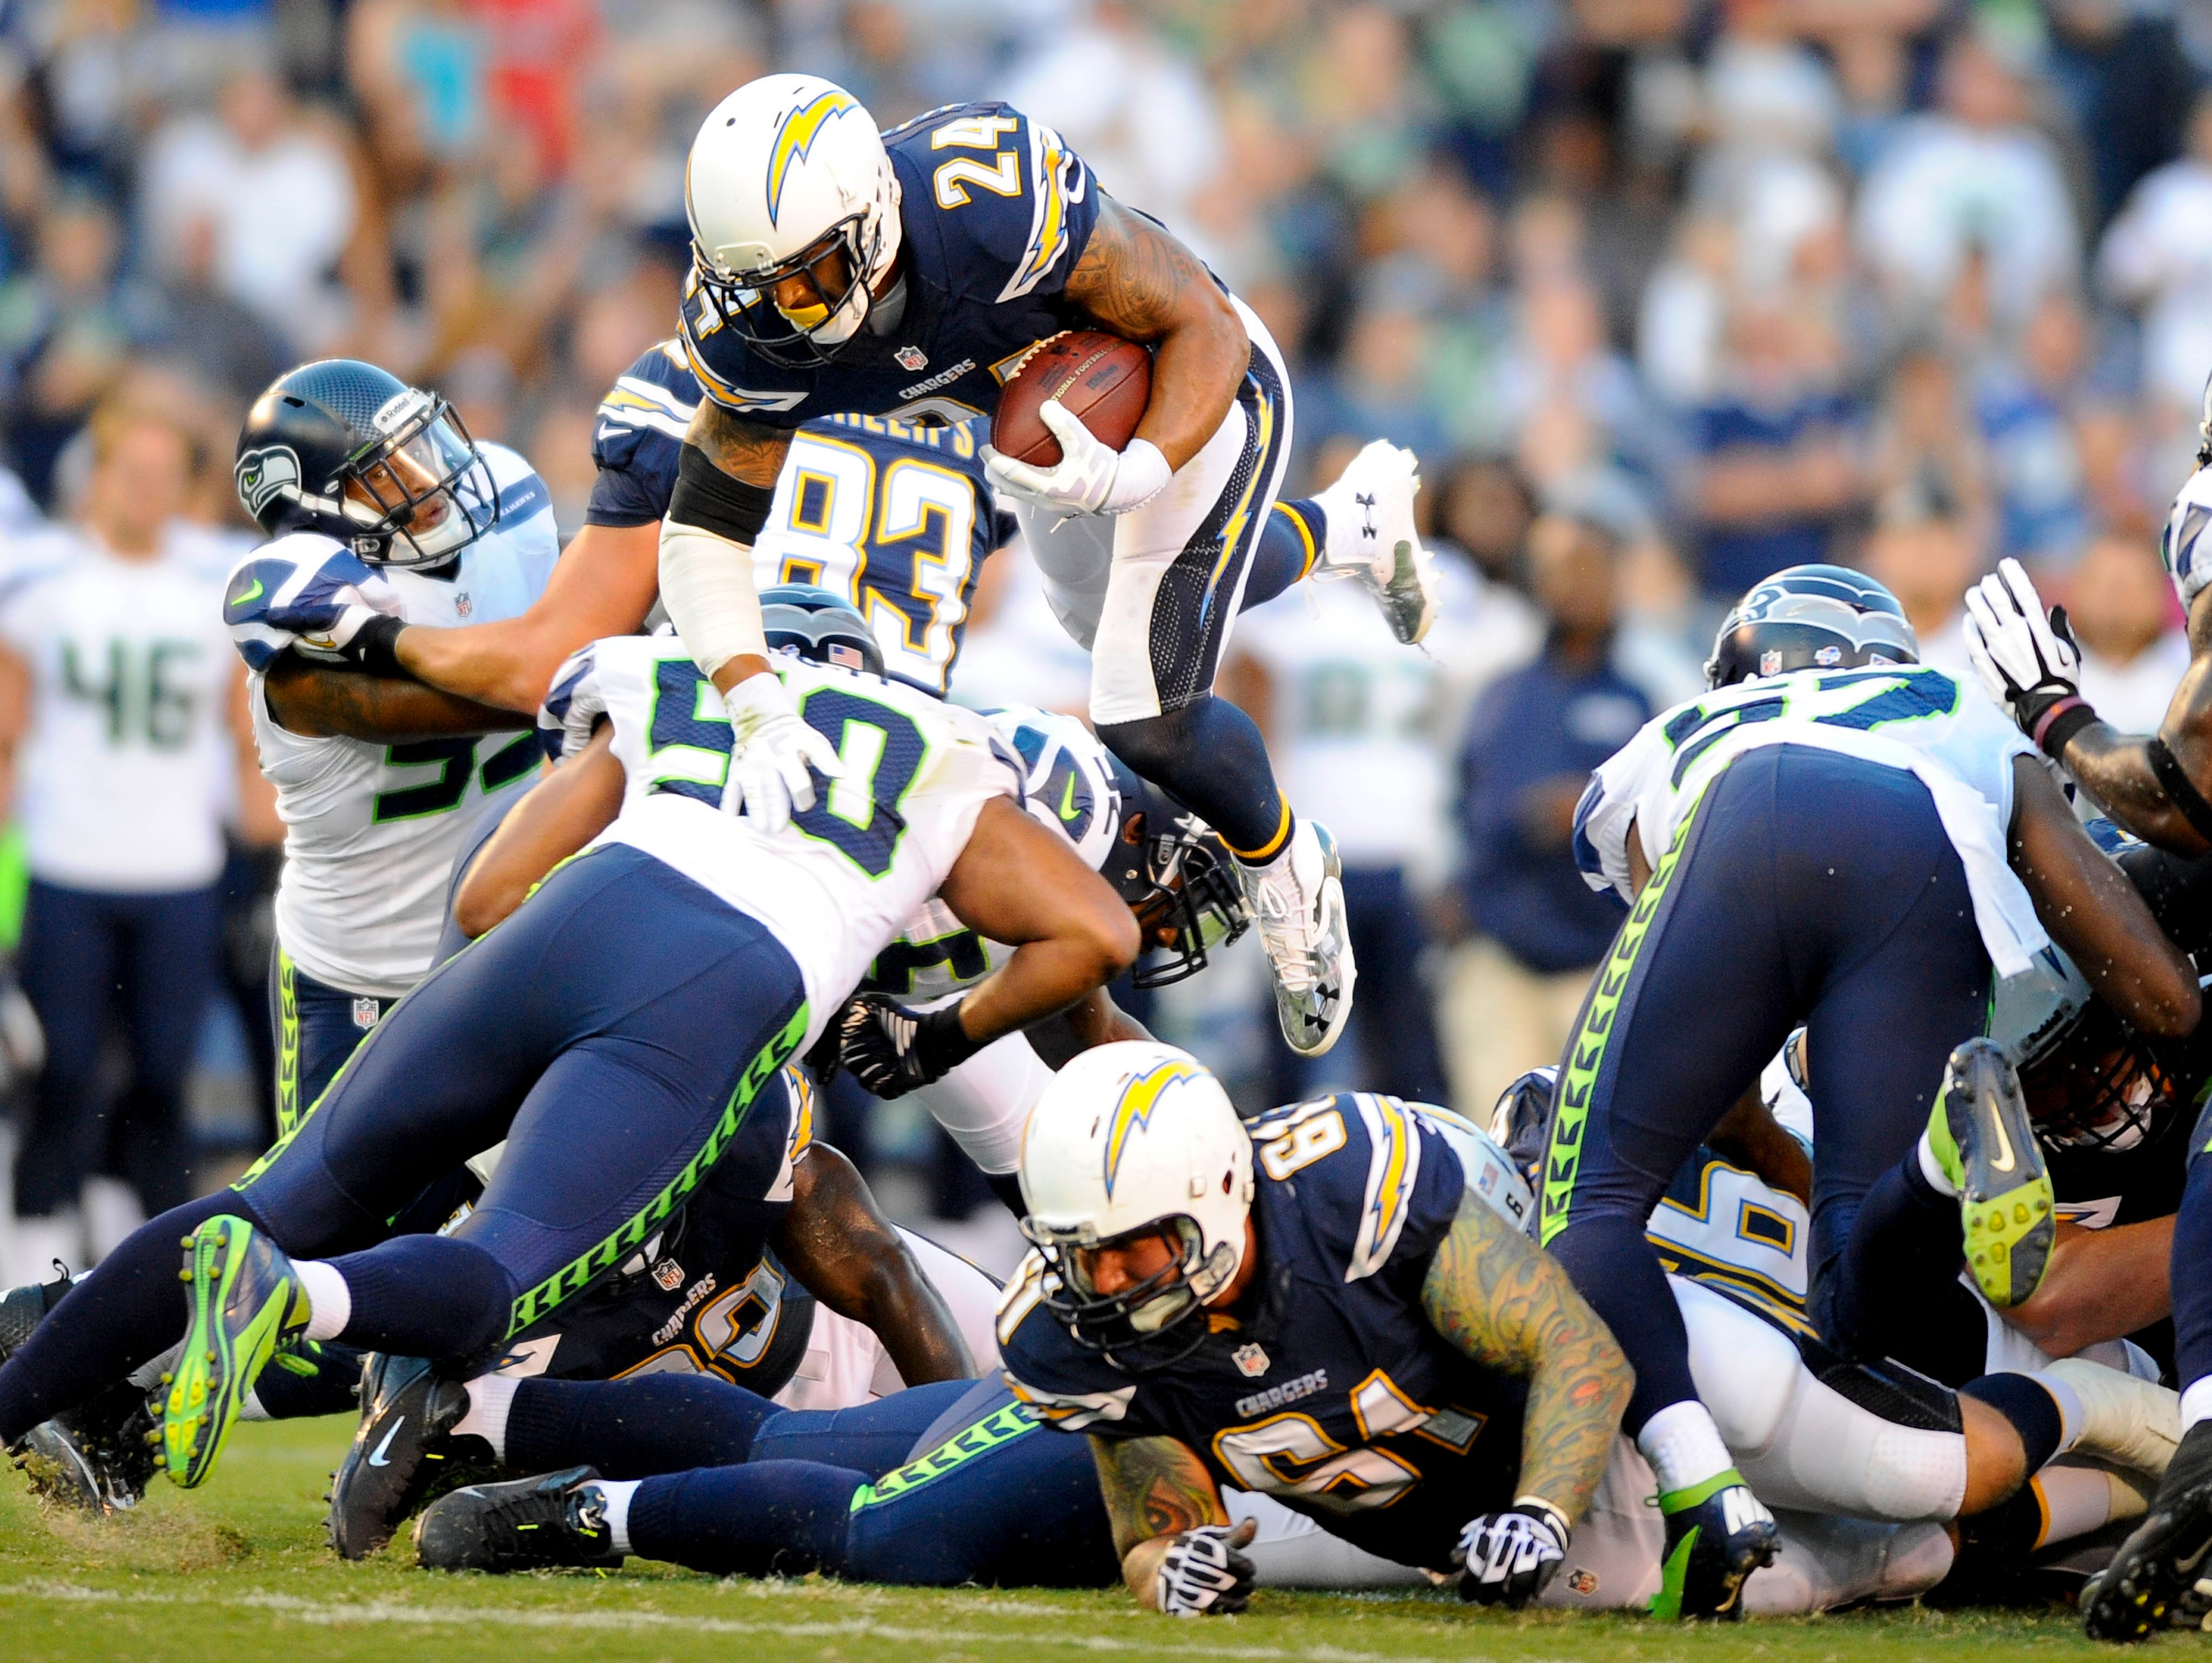 San Diego Chargers running back Ryan Mathews (24) jumps over the line for a first down during the first half against the Seattle Seahawks at Qualcomm Stadium.